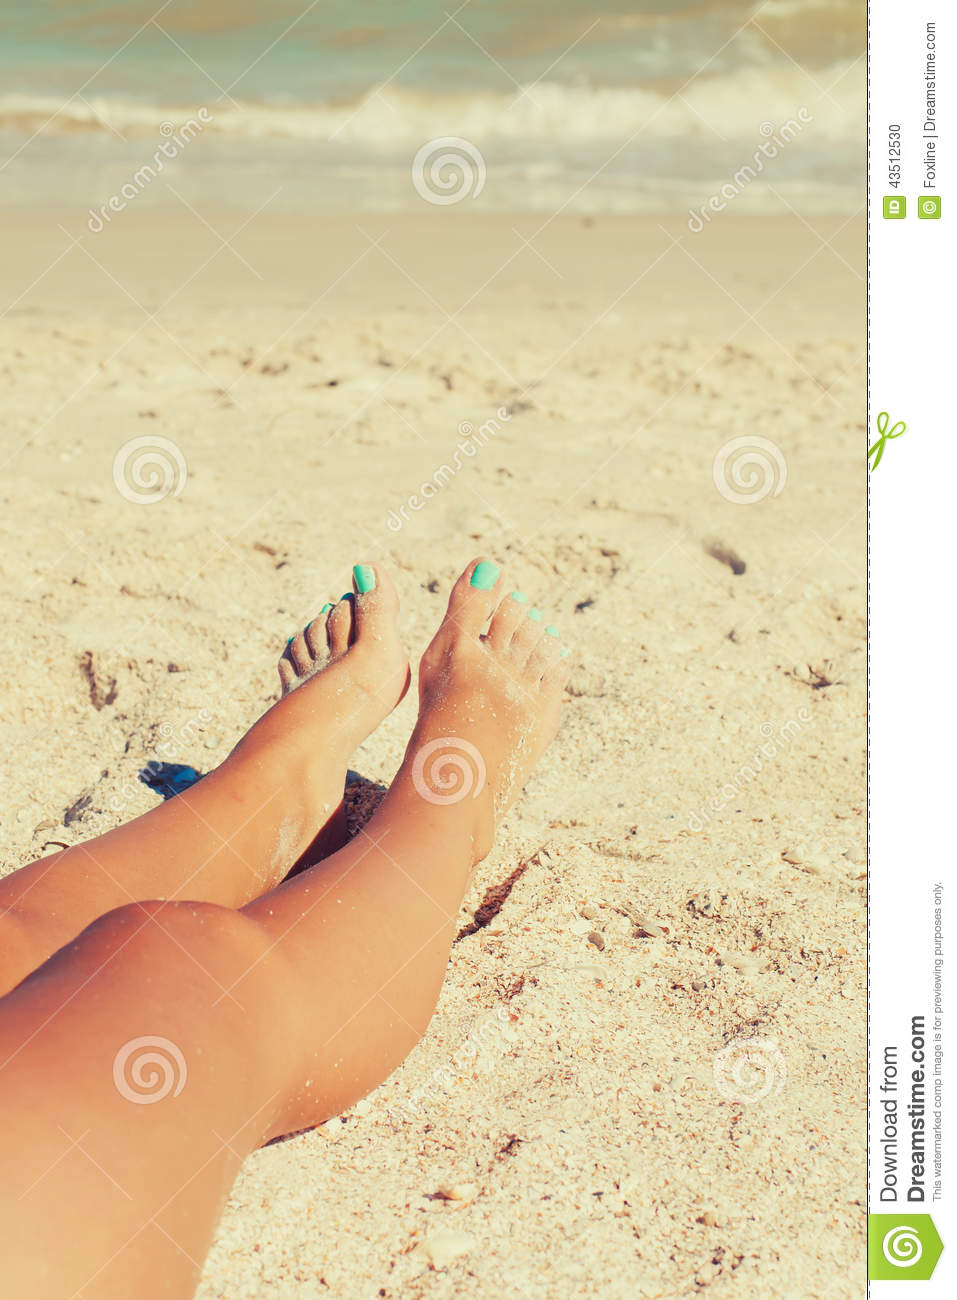 girlfeet Girl feet in the sand on the beach